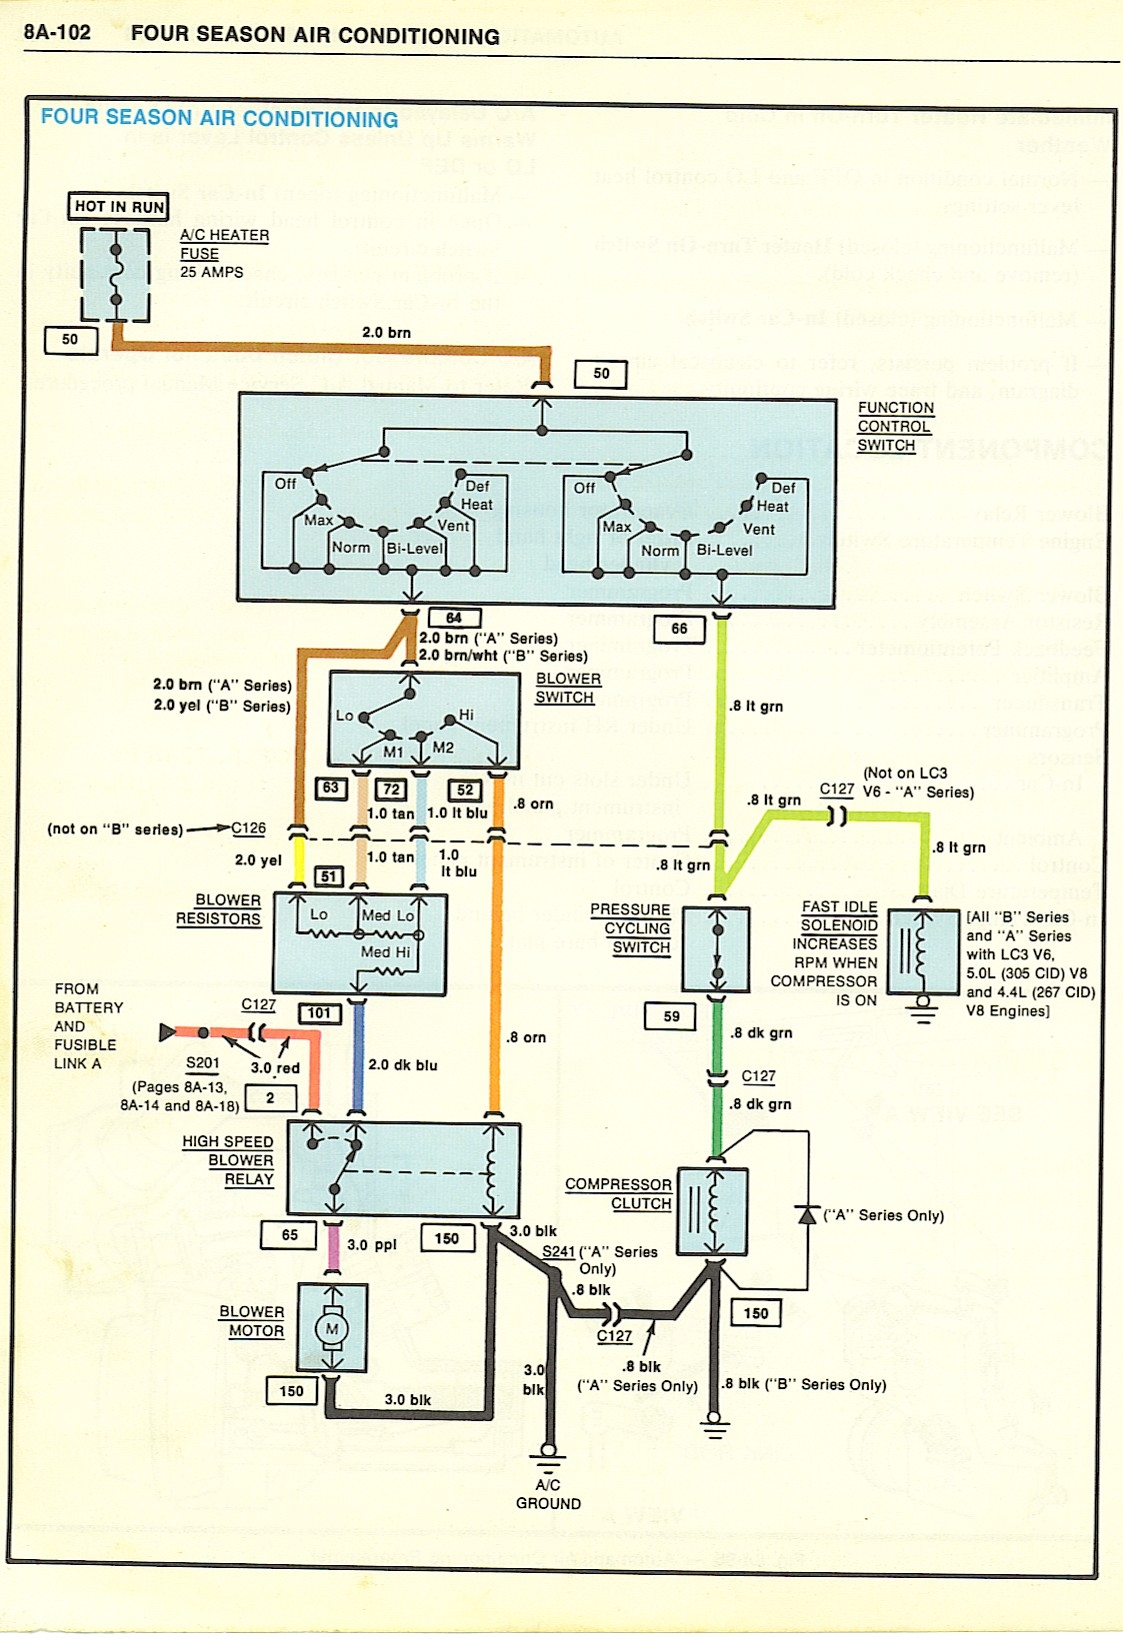 Proton Wira Electrical Wiring Diagram : Diagram wiring power window wira and